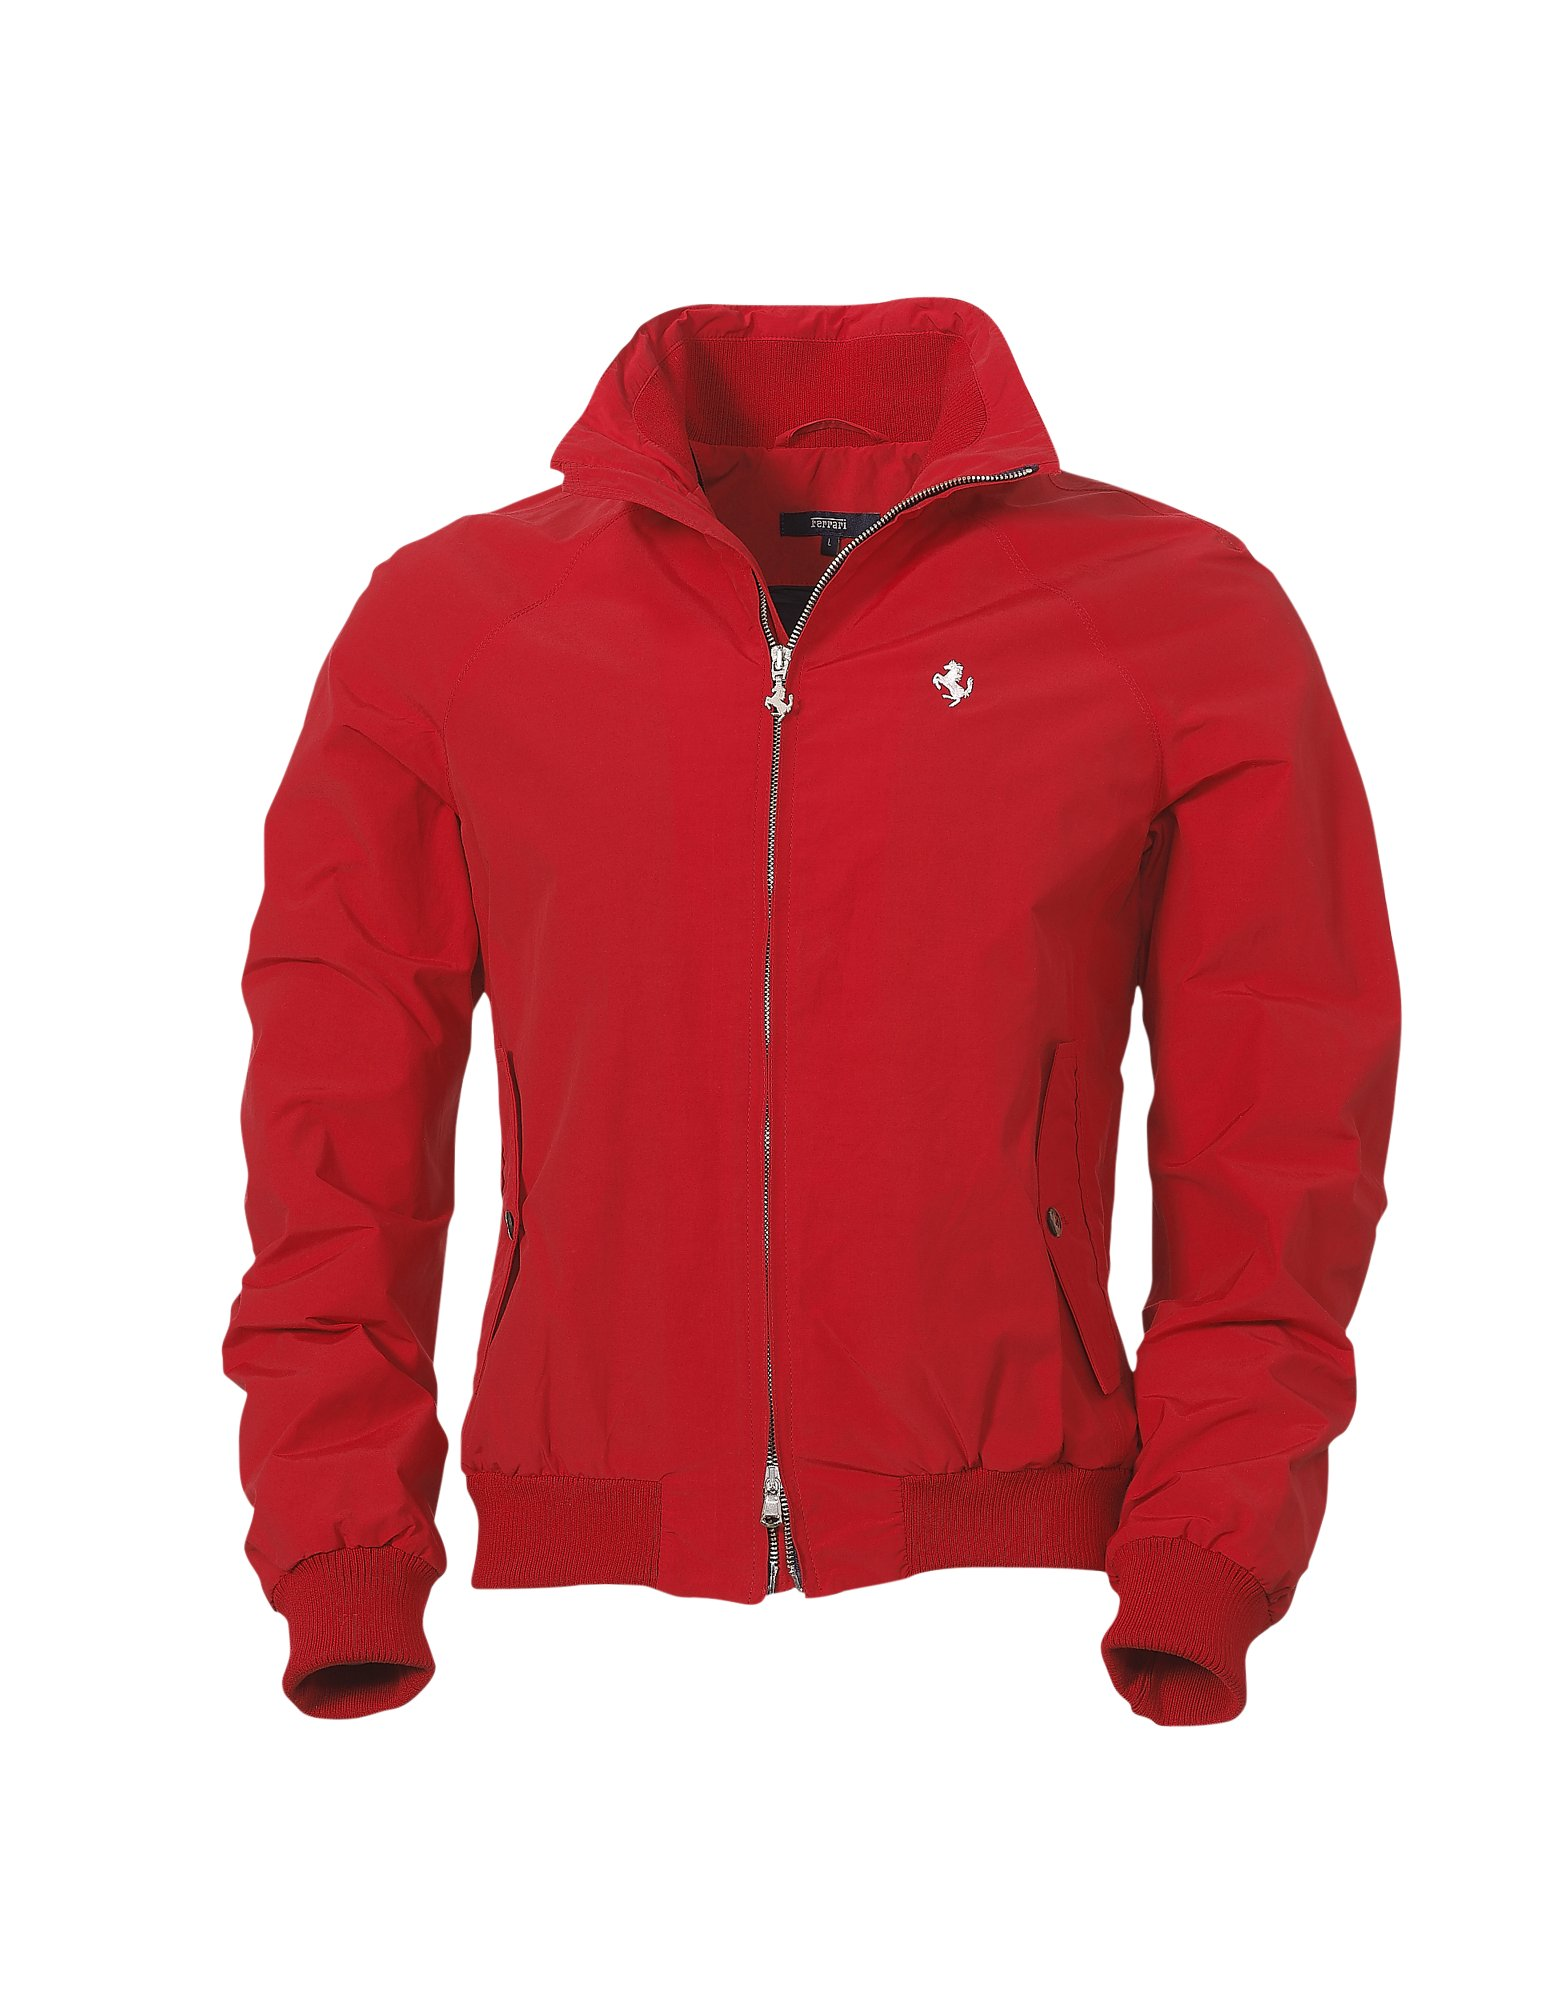 clothing red jacket mens ferrari diadora products italy